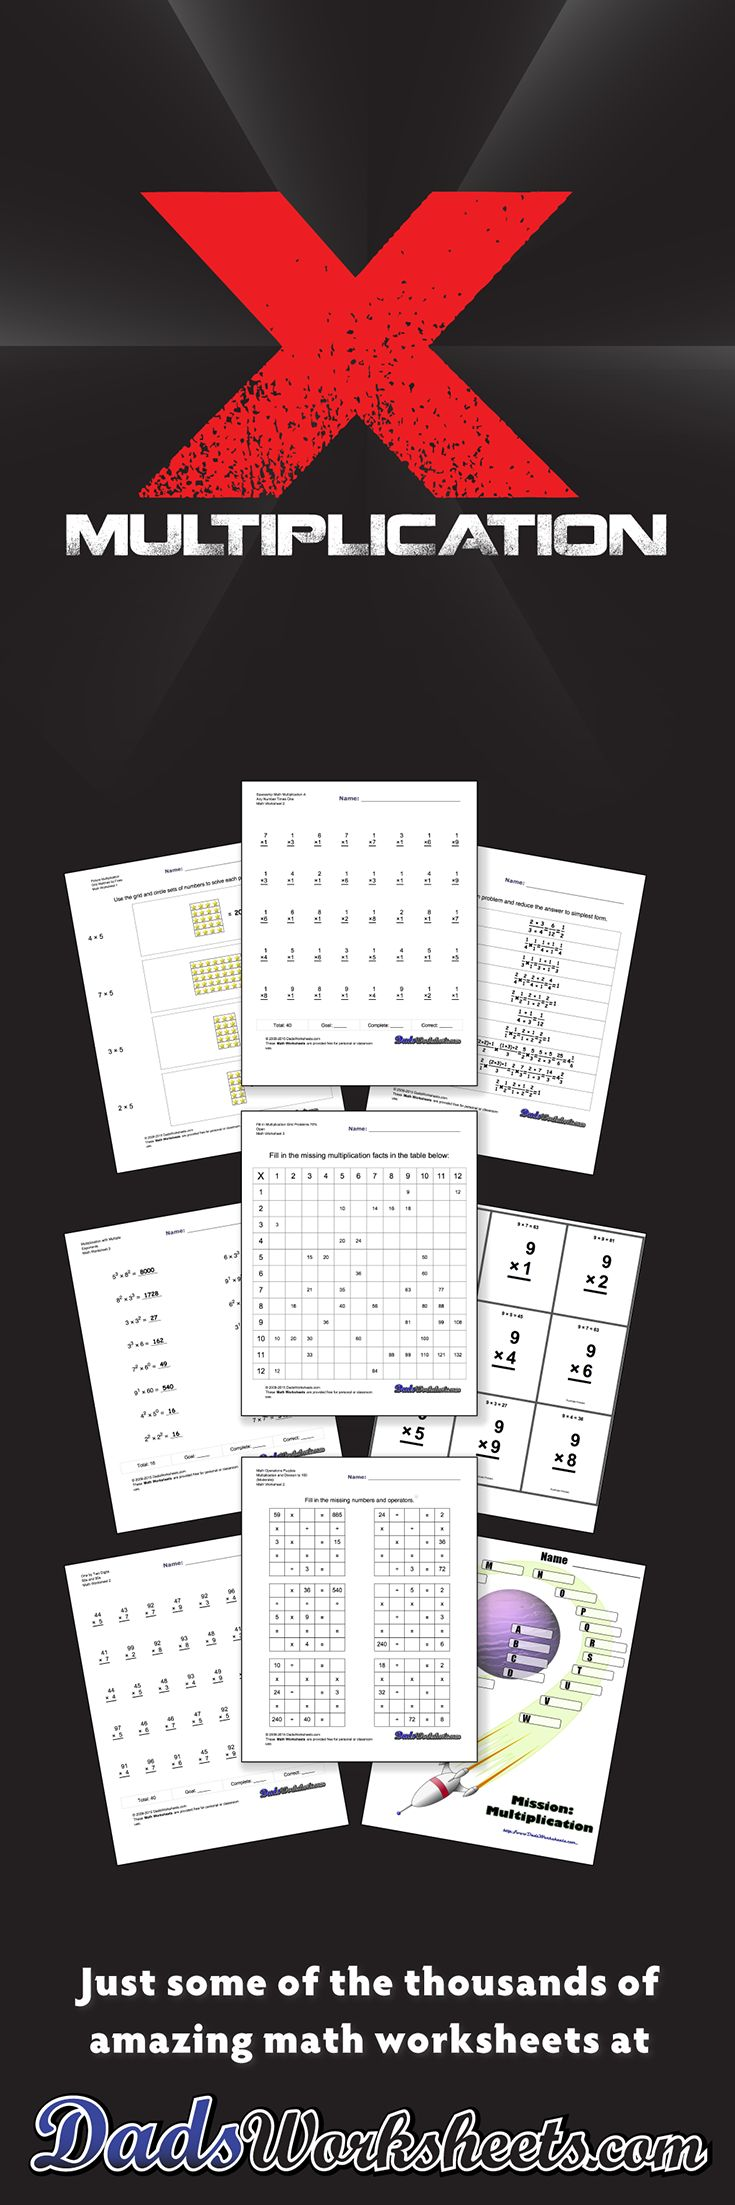 printable multiplication worksheets with answer keys multiplication facts and multi digit. Black Bedroom Furniture Sets. Home Design Ideas